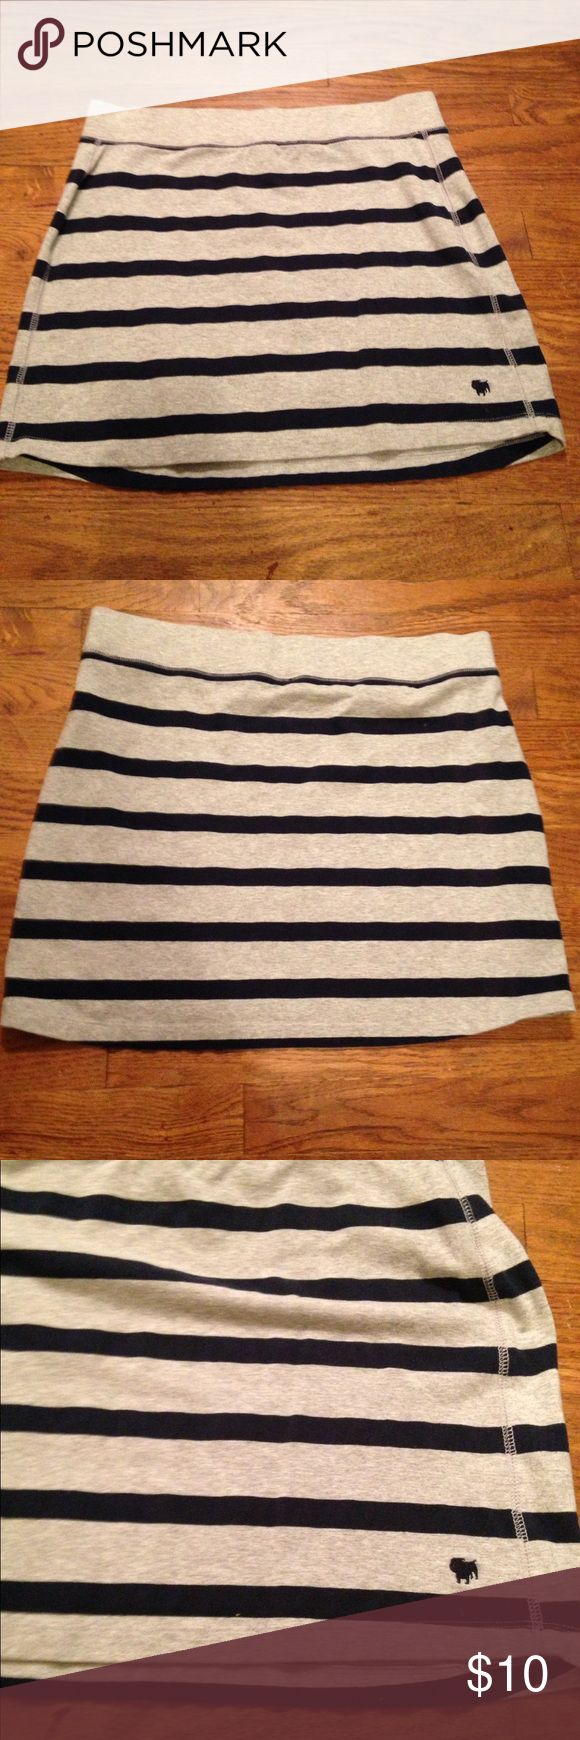 Aeropostale cotton stripped mini skirt Aeropostale navy and gray stripped cotton mini. Super soft cotton... comfy and cute!  In new condition! Aeropostale Skirts Mini